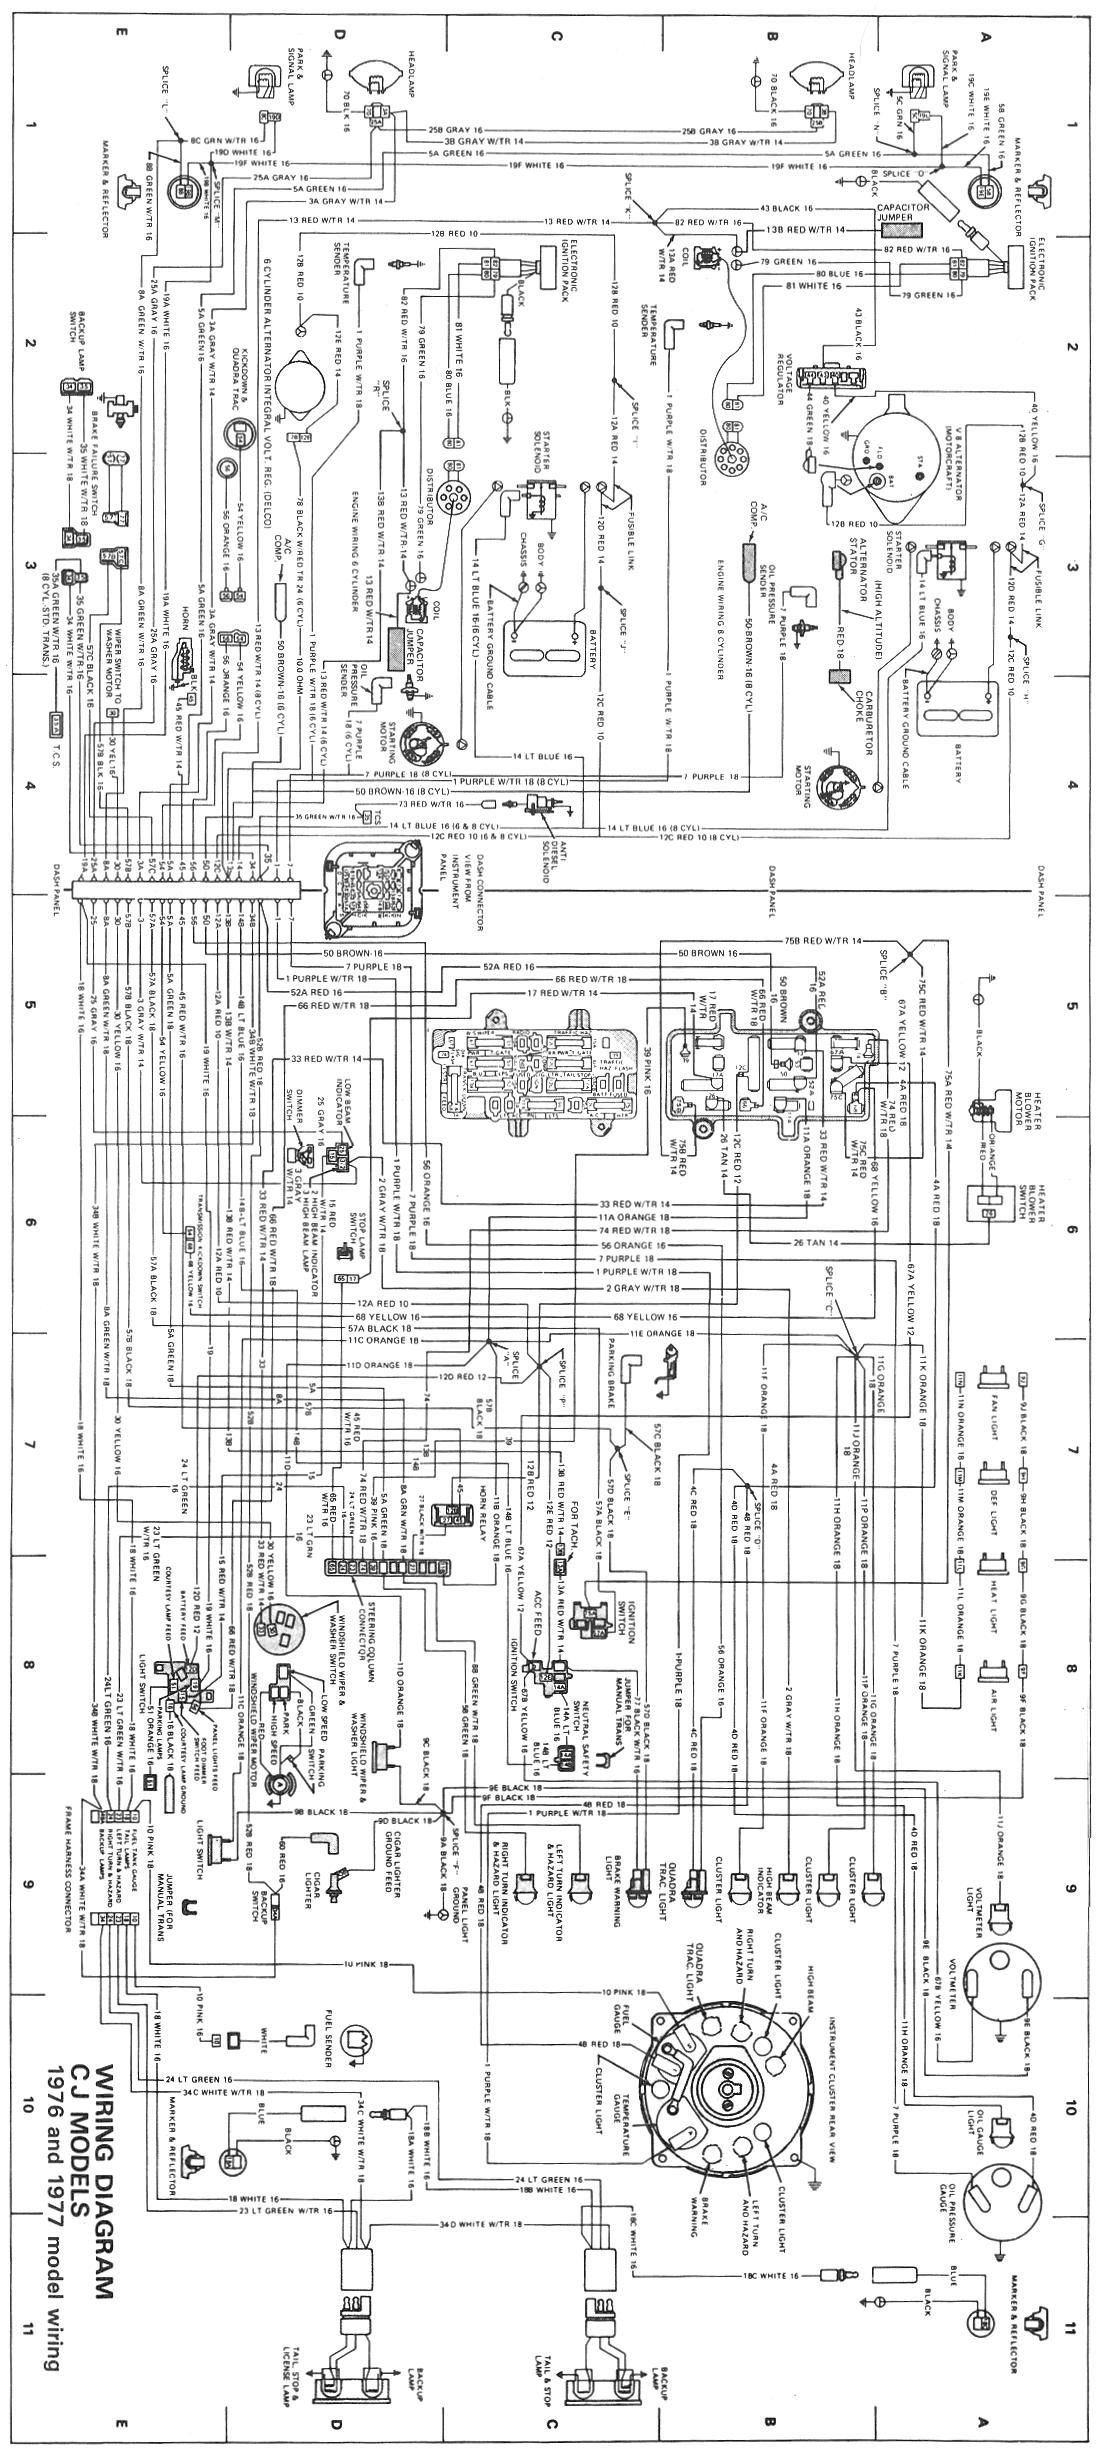 8d25ded6e3673519e155875e09844e5e cj wiring diagram 1976 1977 jpg 1,100�2,459 pixels 1976 jeep cj5 jeep cj5 wiring diagram at gsmx.co